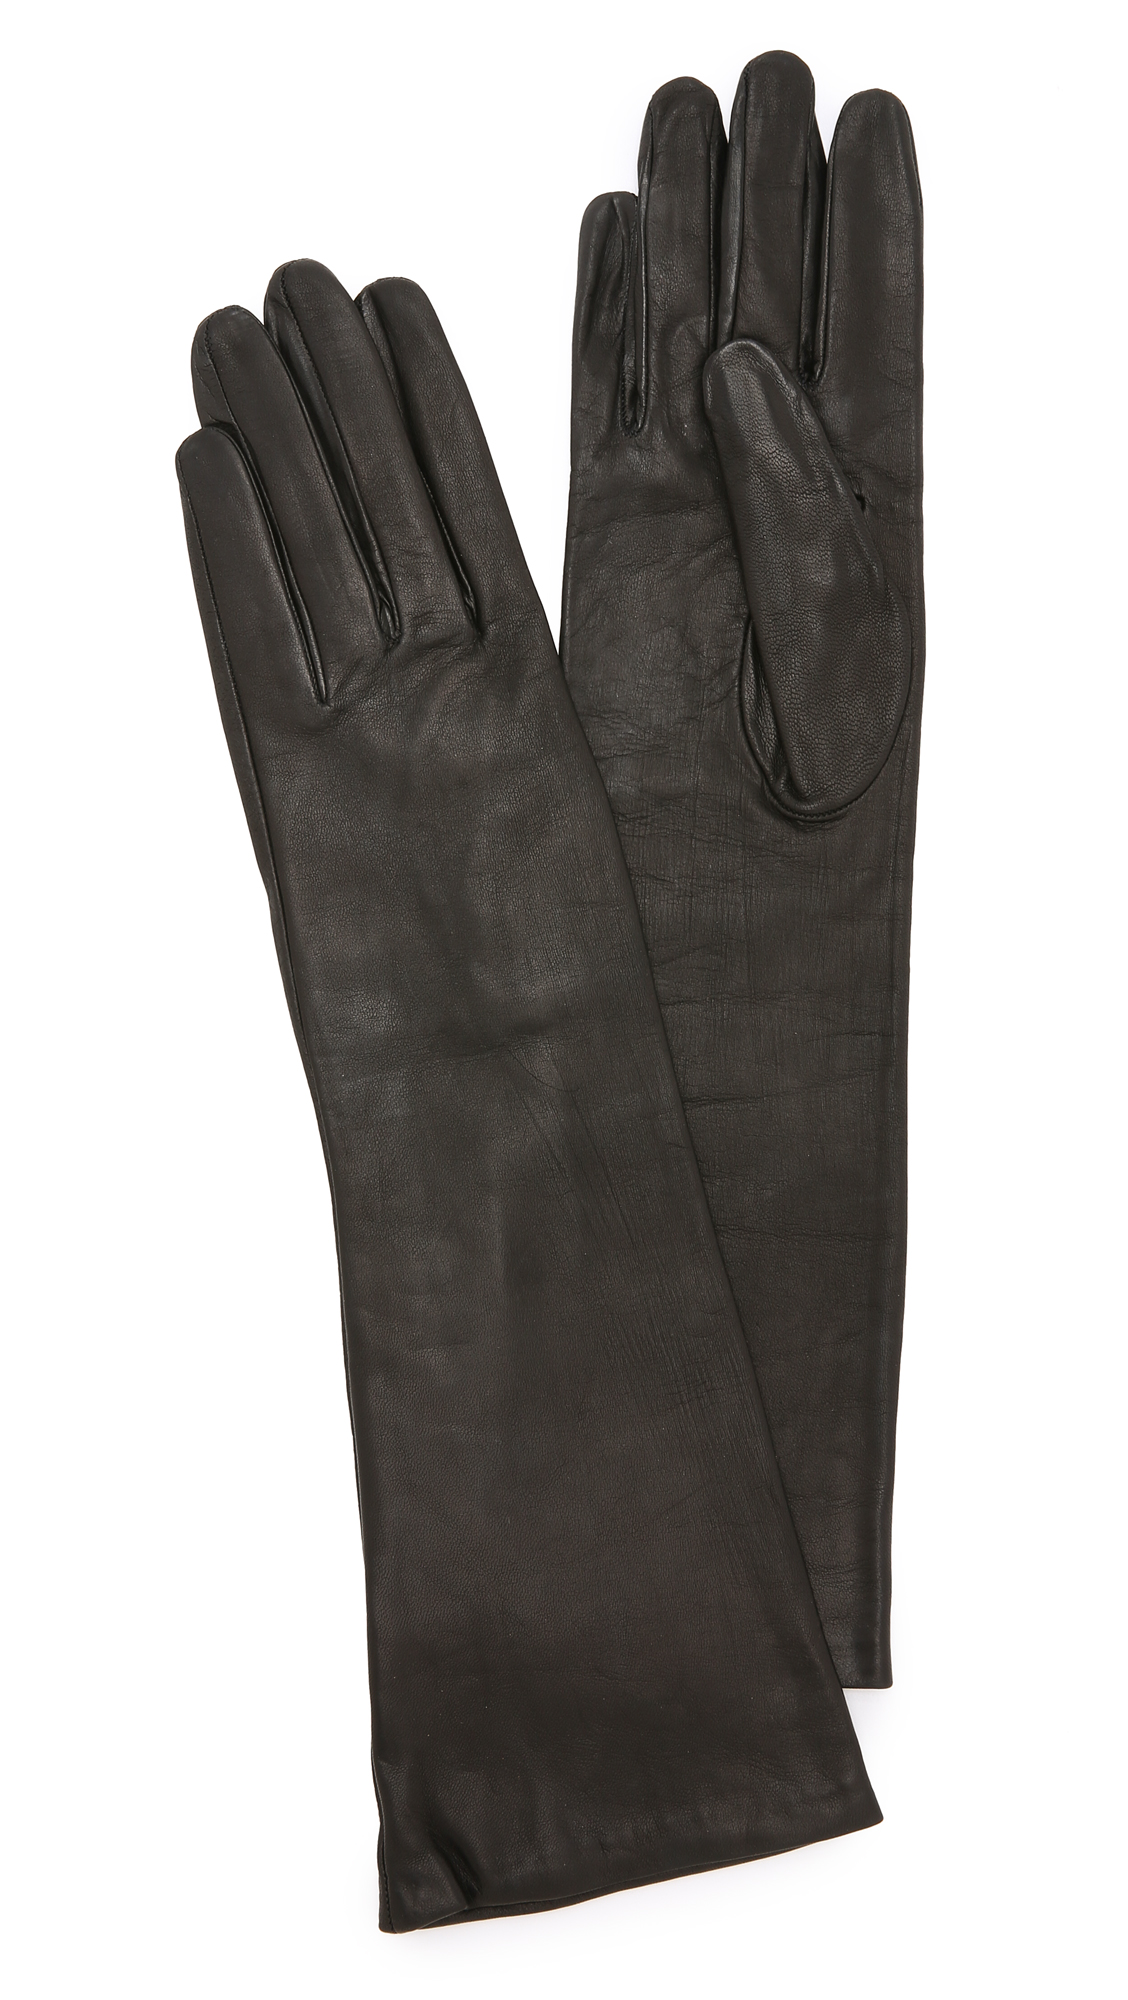 Carolina Amato Long Leather Gloves - Black